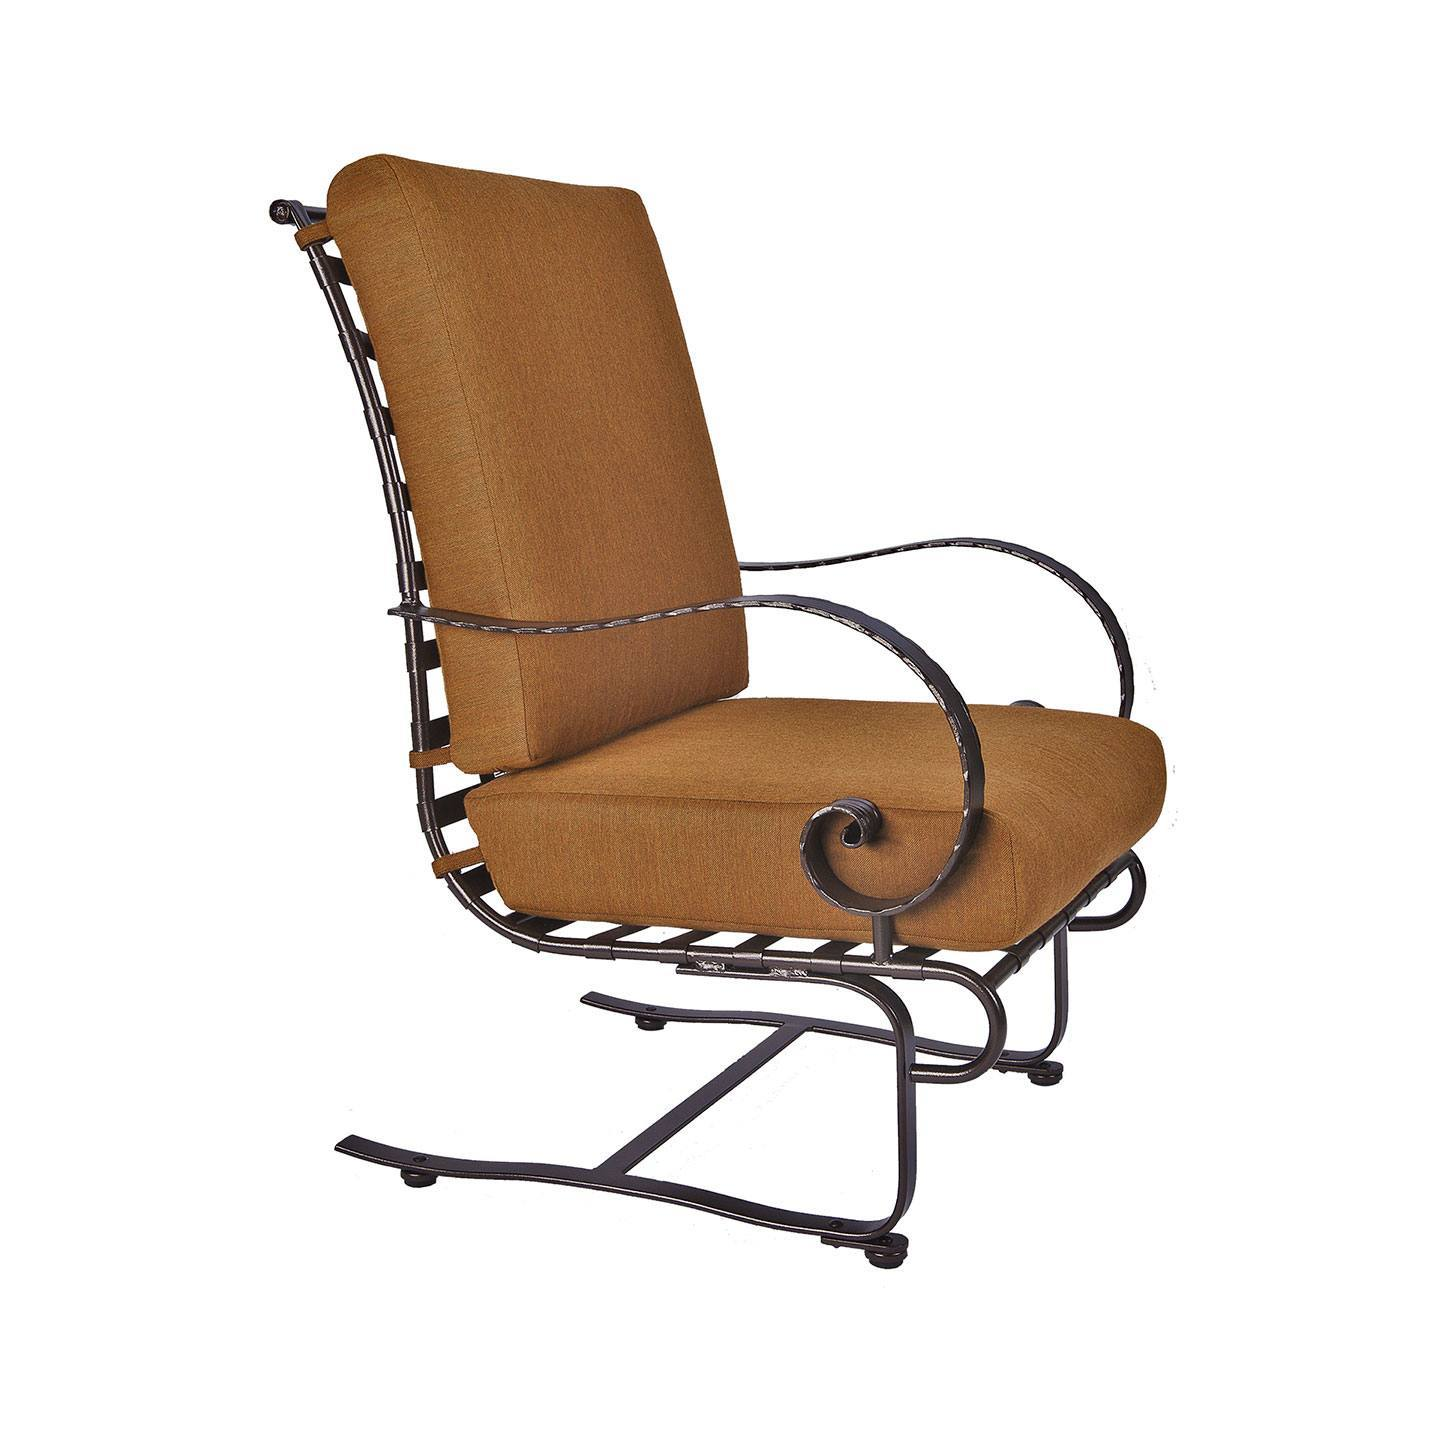 Ow Lee Classico Hi Back Spring Base Lounge Chair Leisure